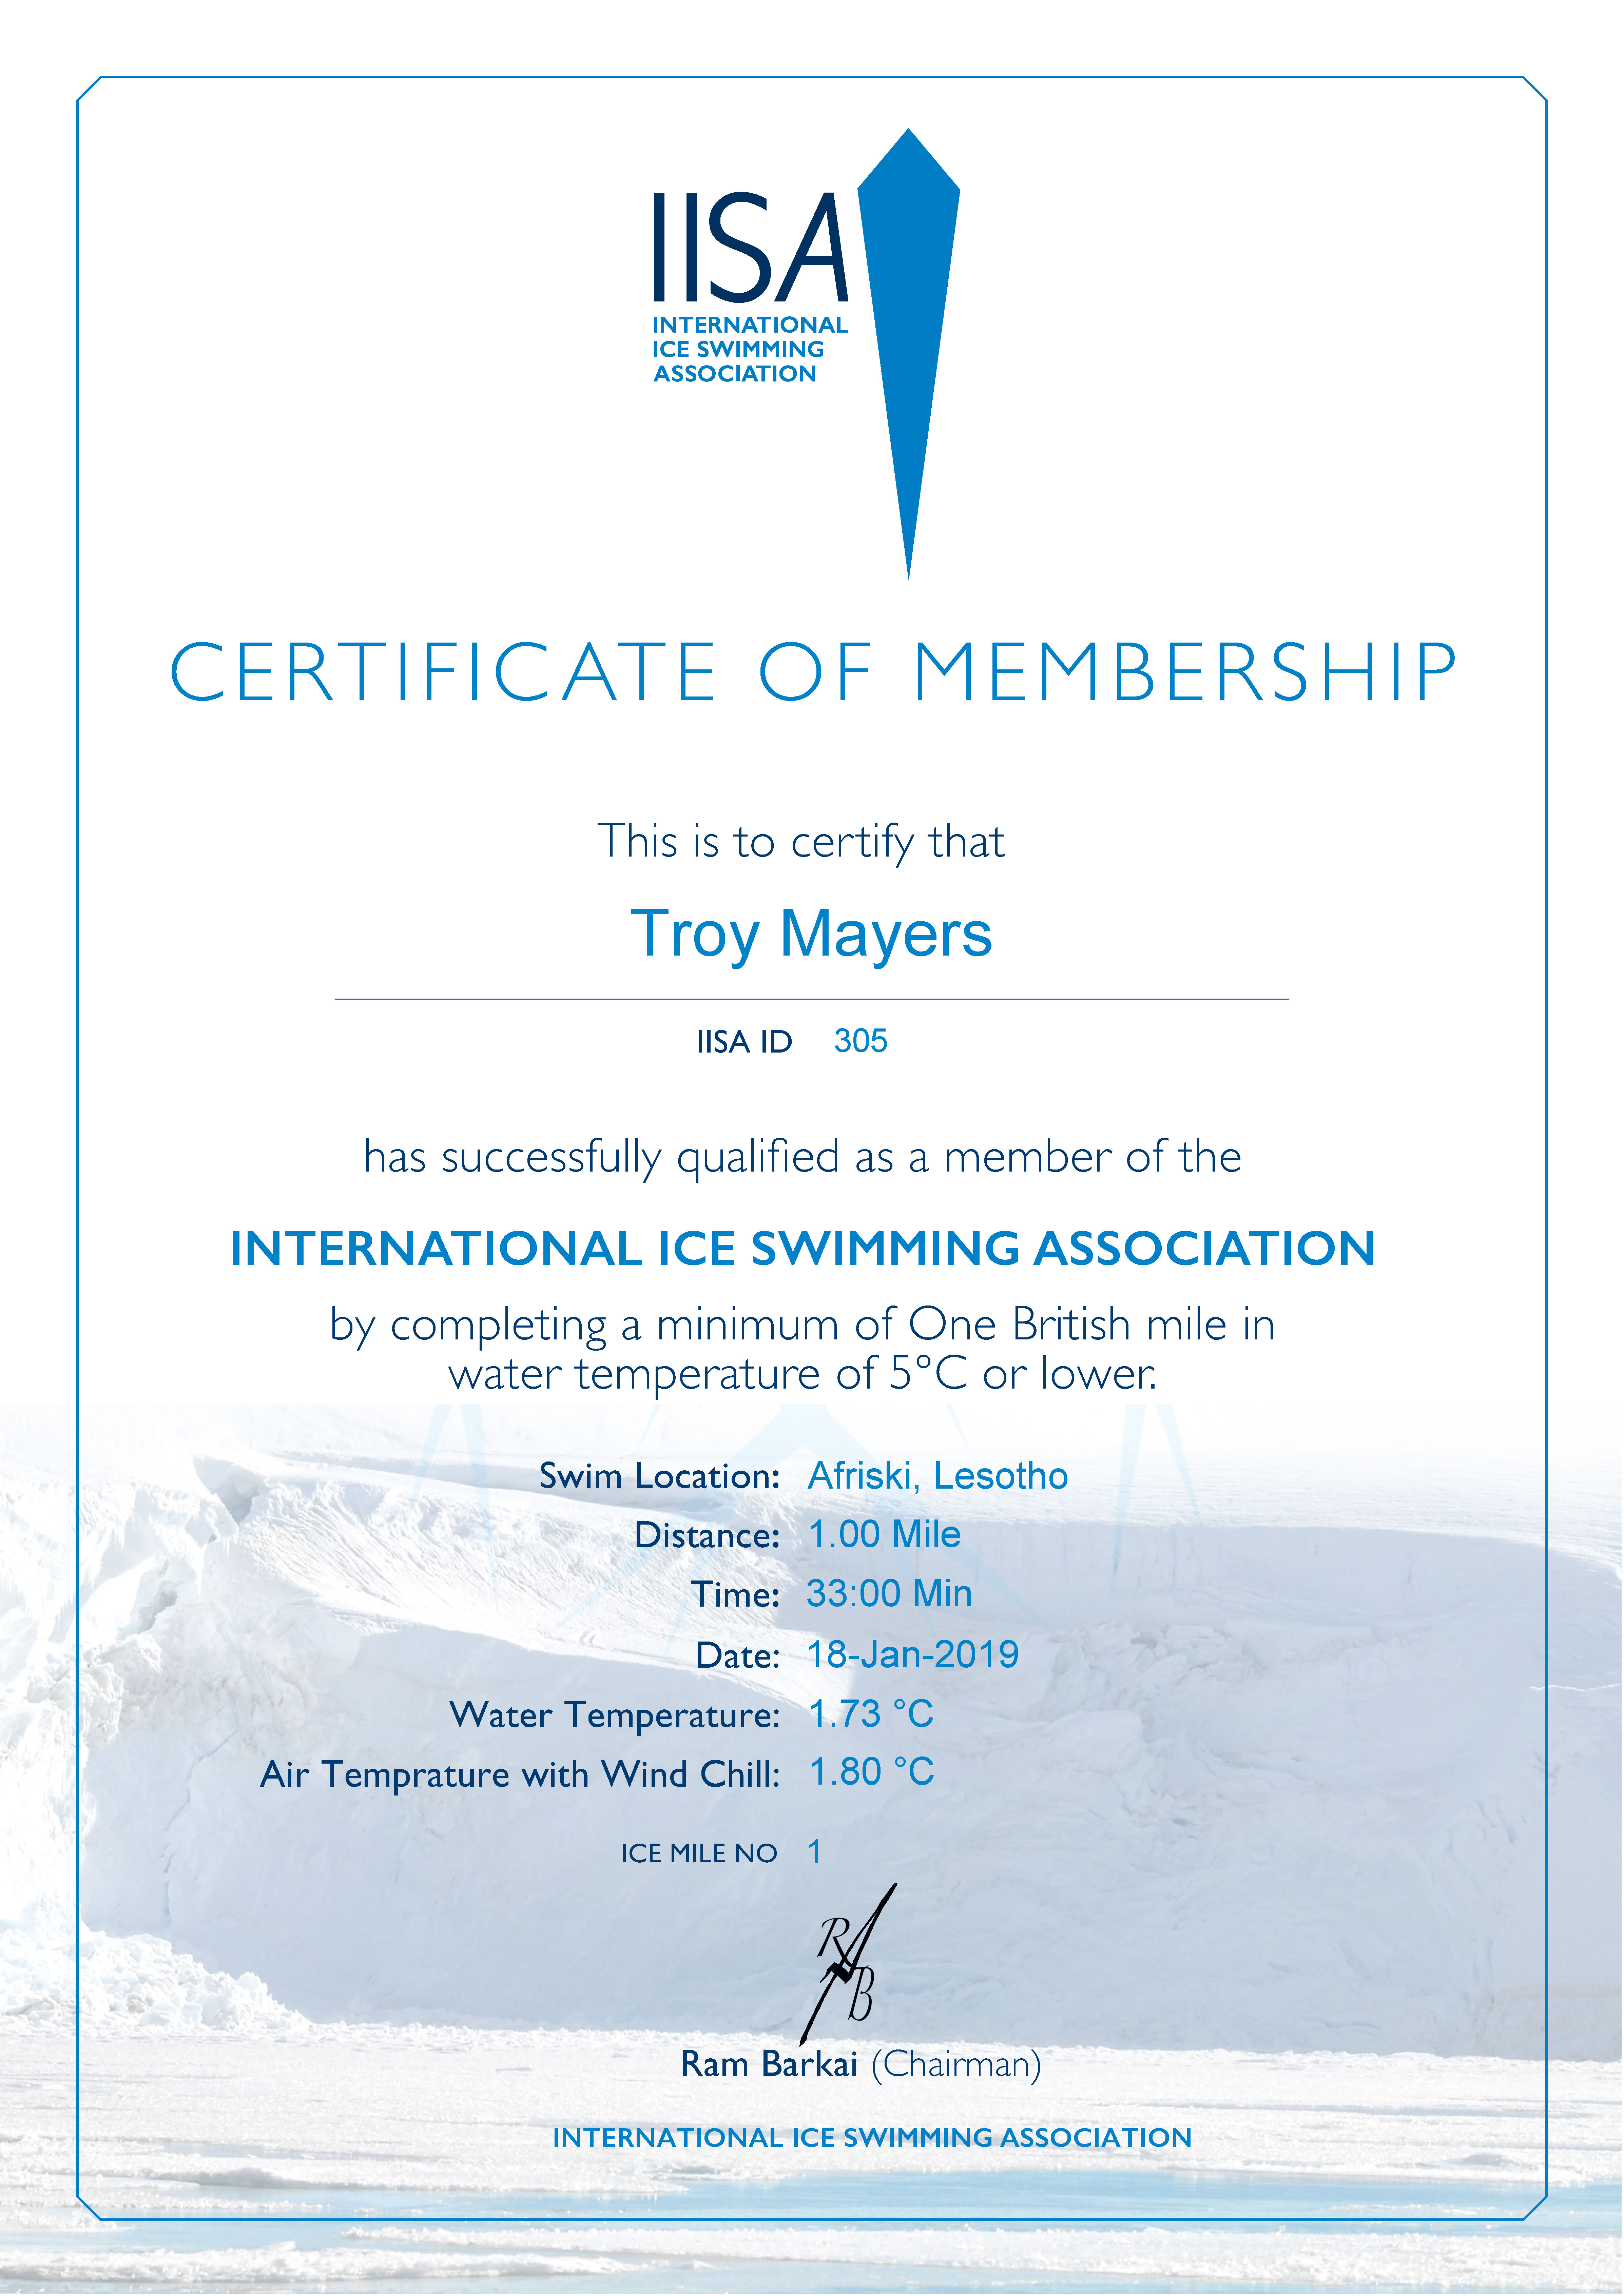 Ice Mile Certificate - Troy Mayers